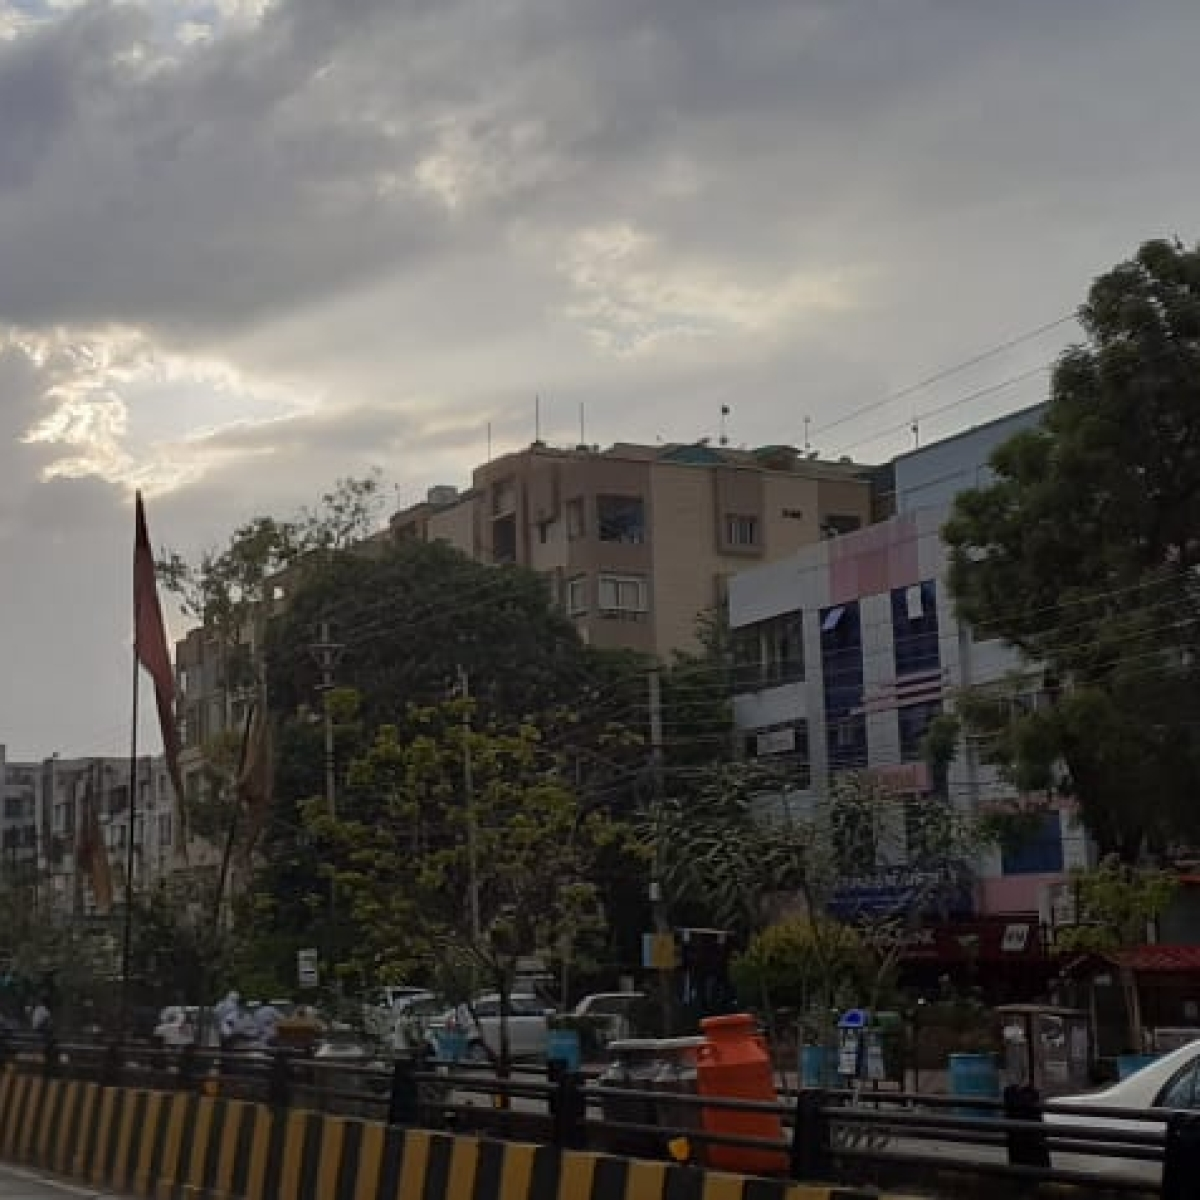 Monsoon likely to hit Indore by June 18